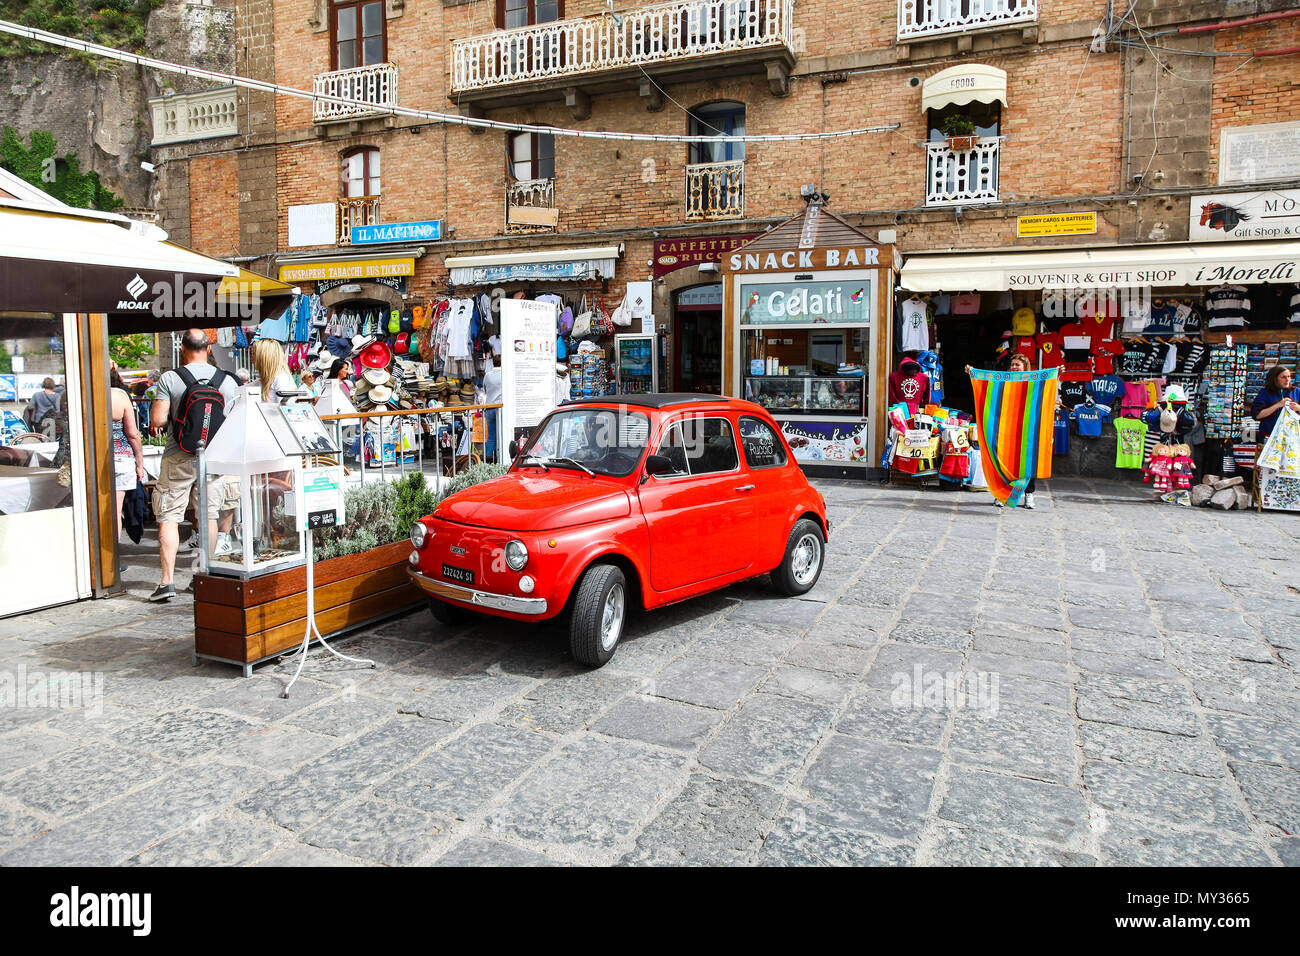 An old red Fiat 500 car advertising the Ruccio Restaurant and Café, Sorrento, Italy - Stock Image